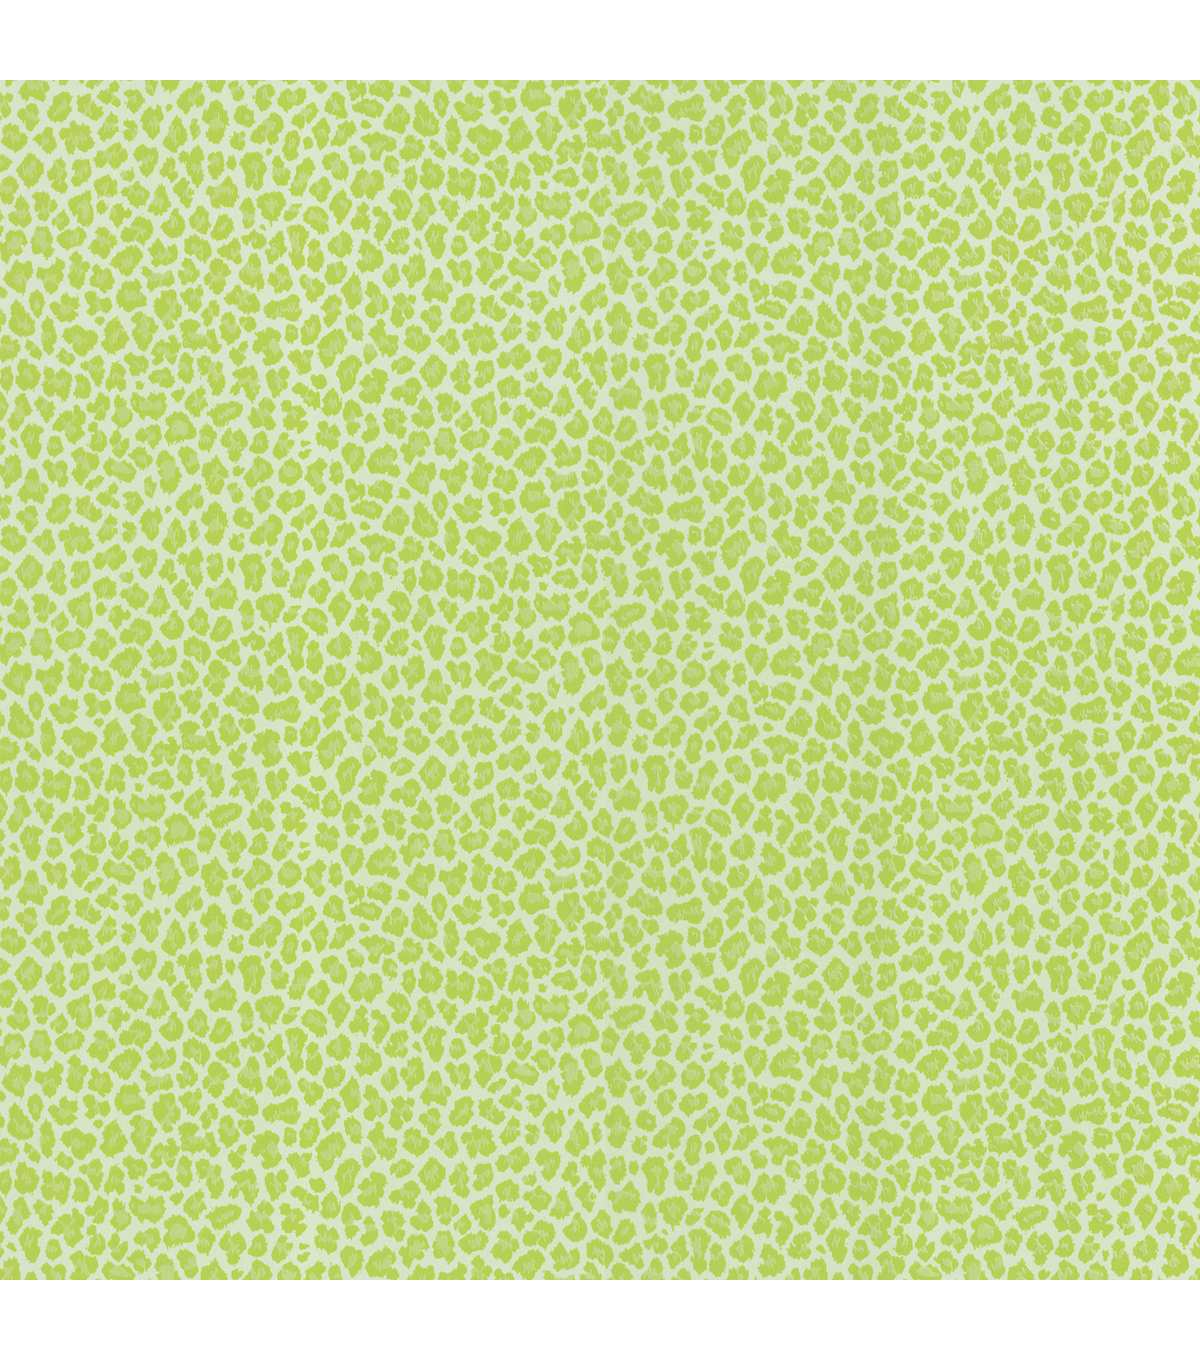 Sassy Green Cheetah Print Wallpaper Sample